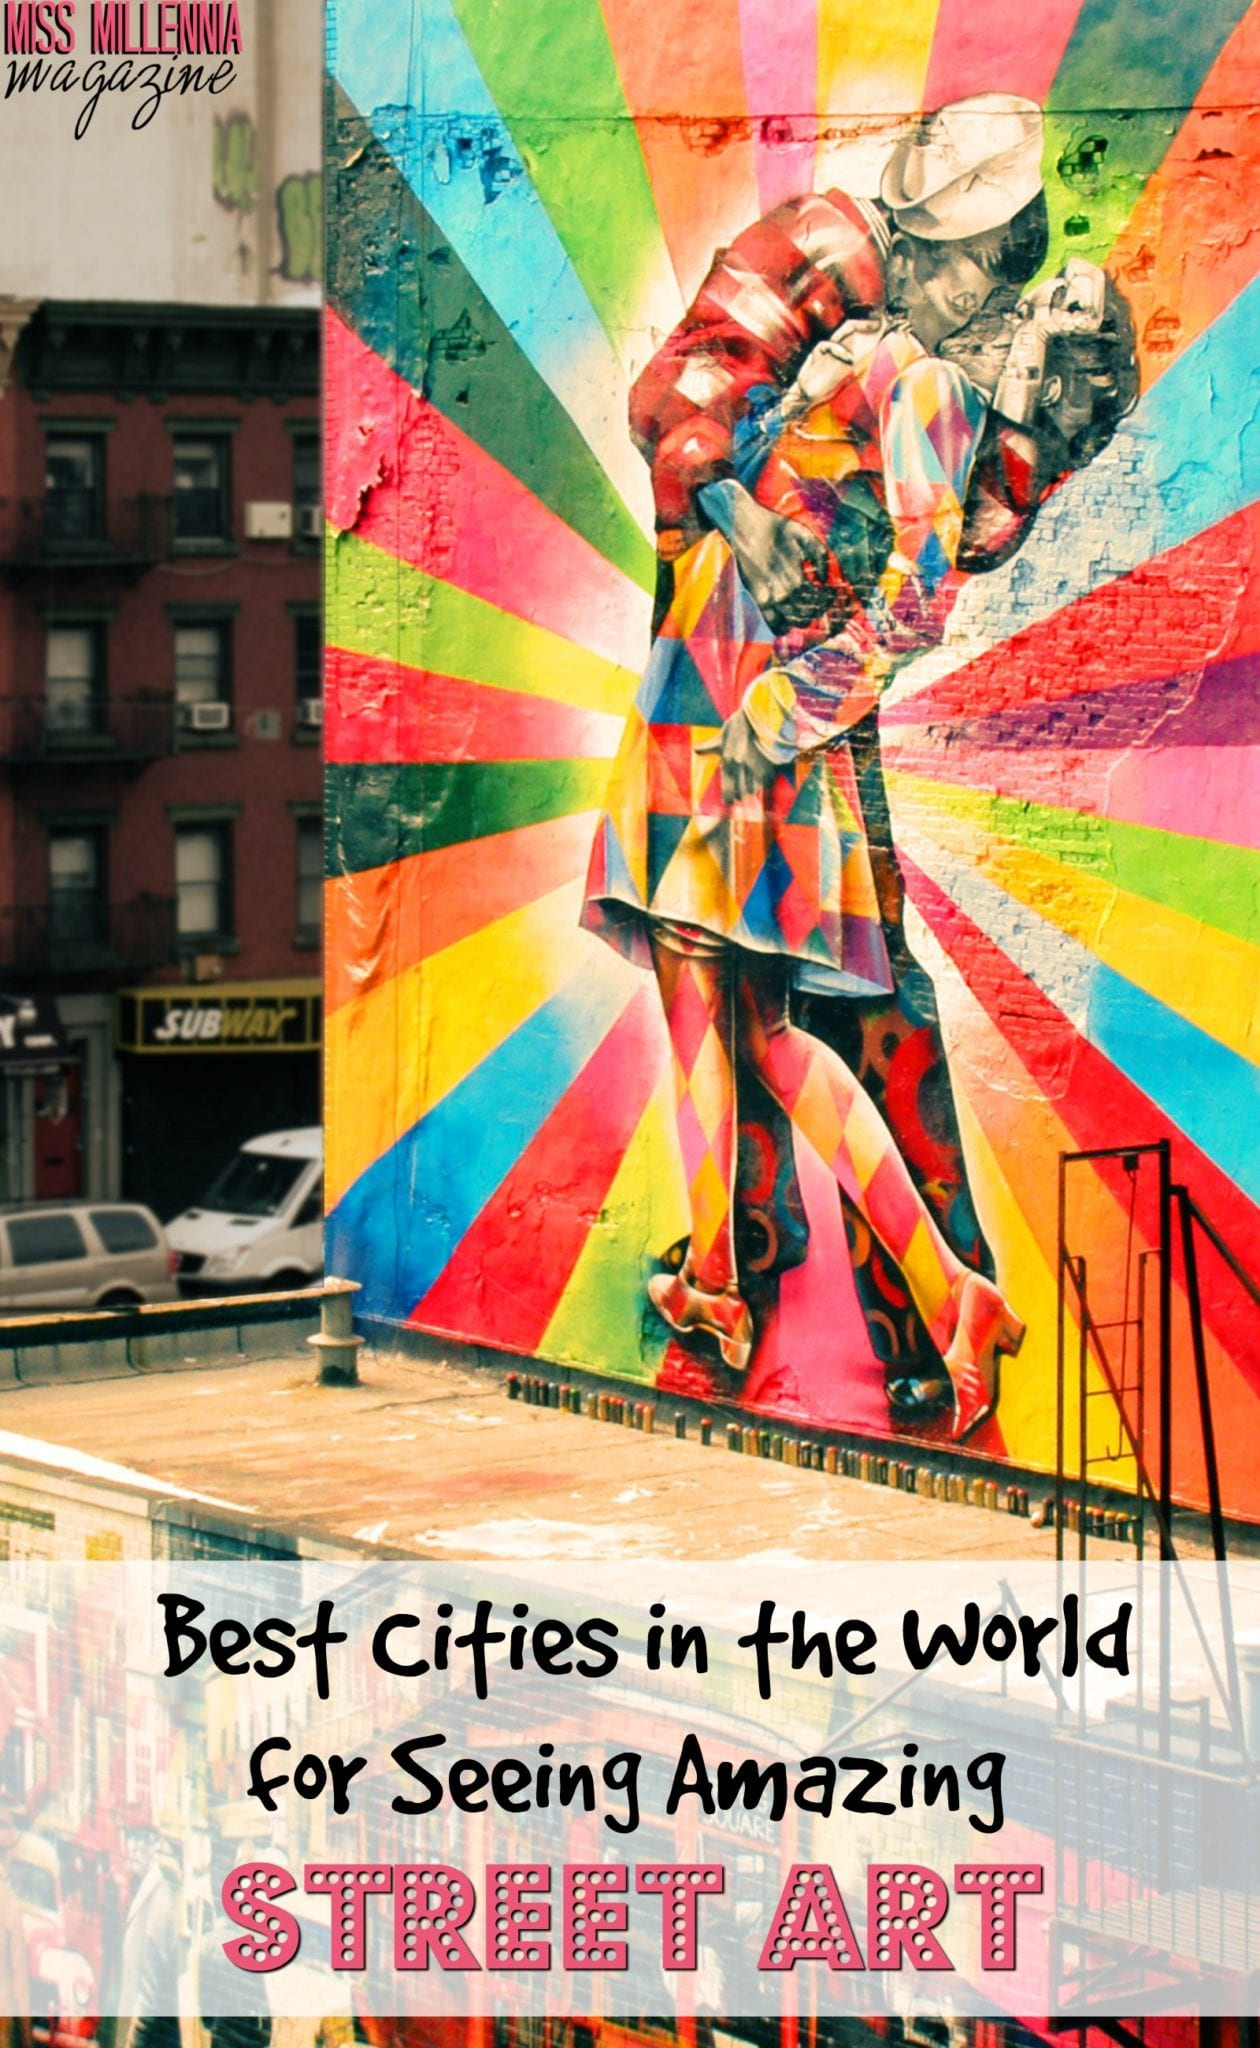 Cities with amazing street art? I think yes.